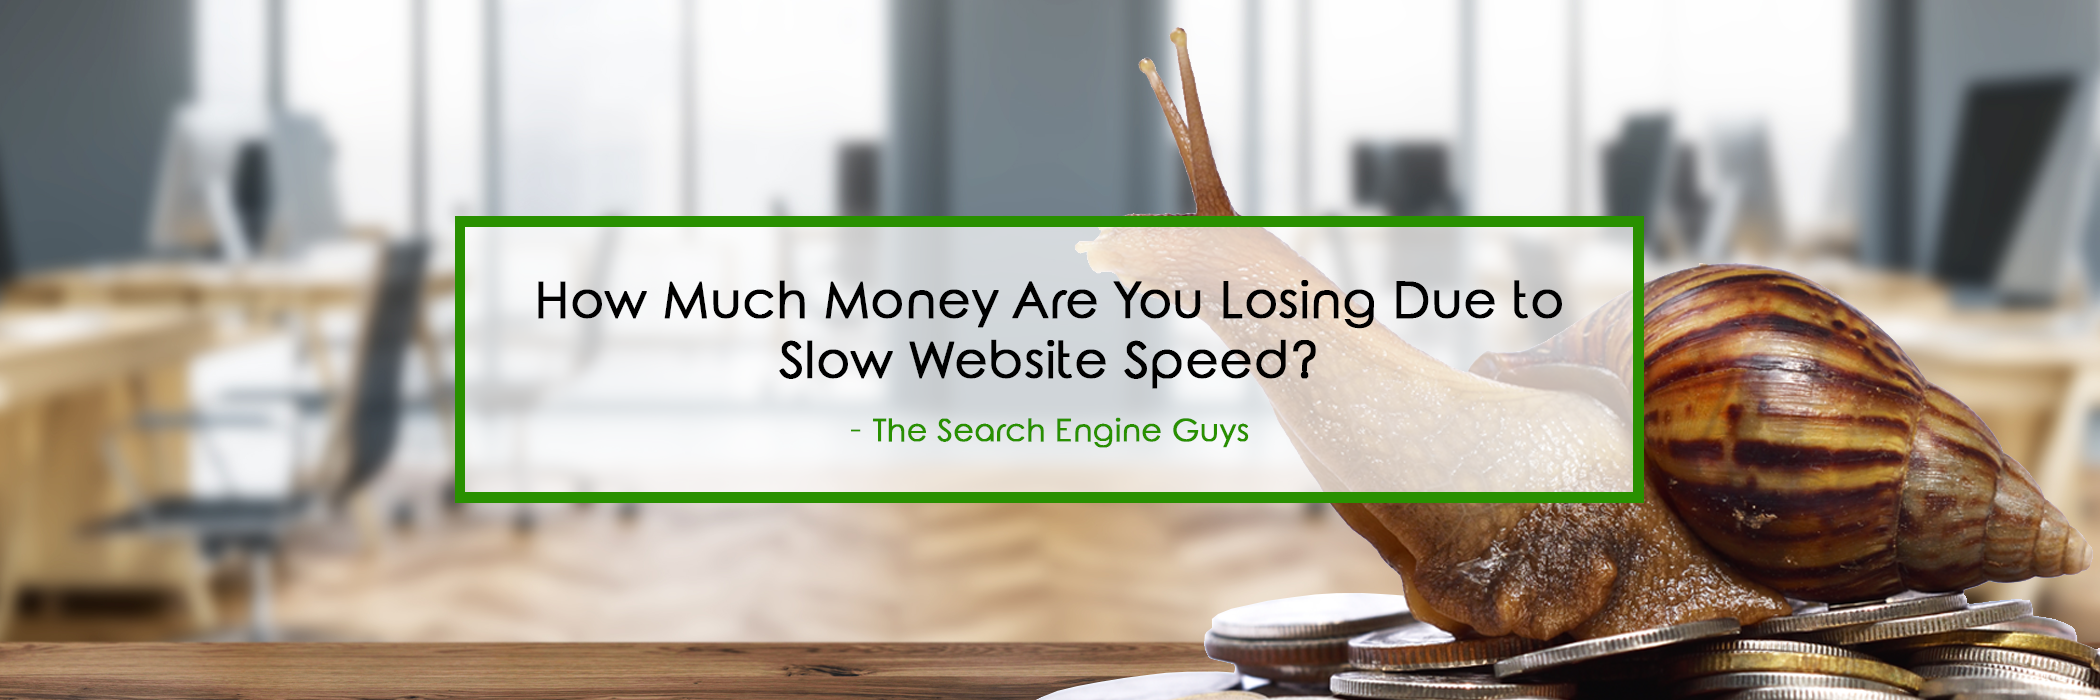 How much money are you losing due to slow website speed?